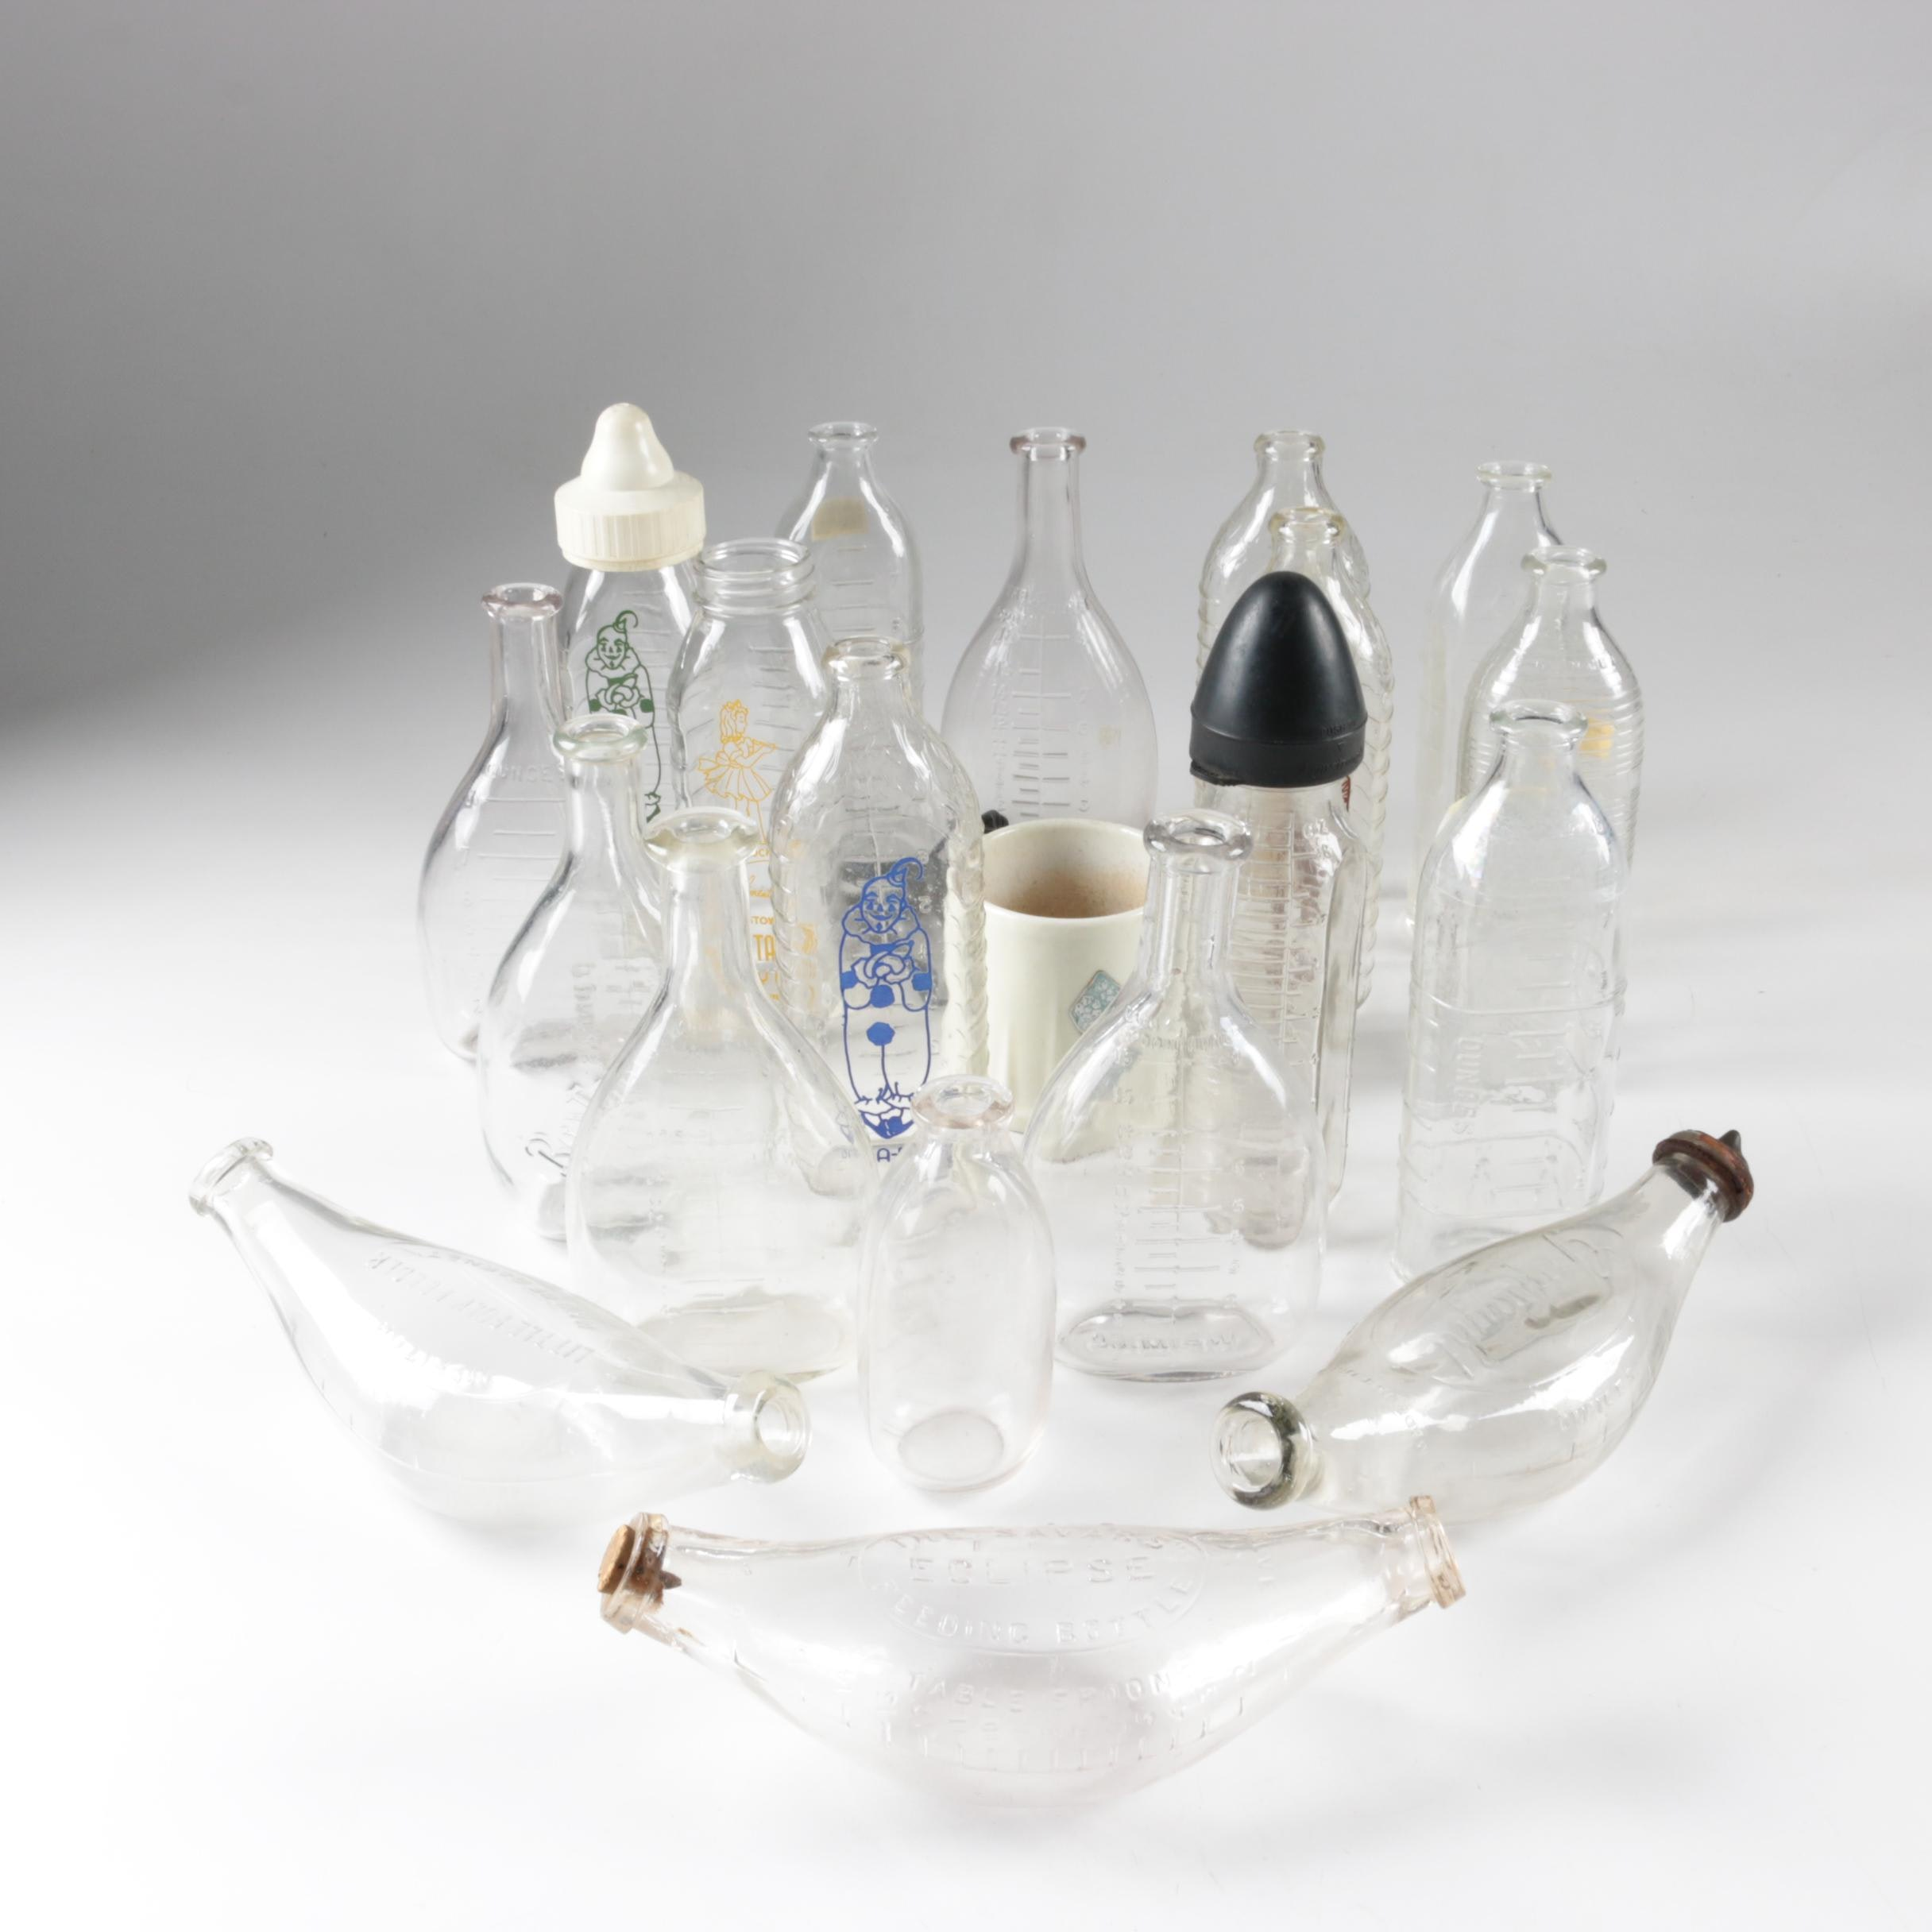 Vintage Glass Baby Bottles, Baby Bottle Warmer and Other Bottles